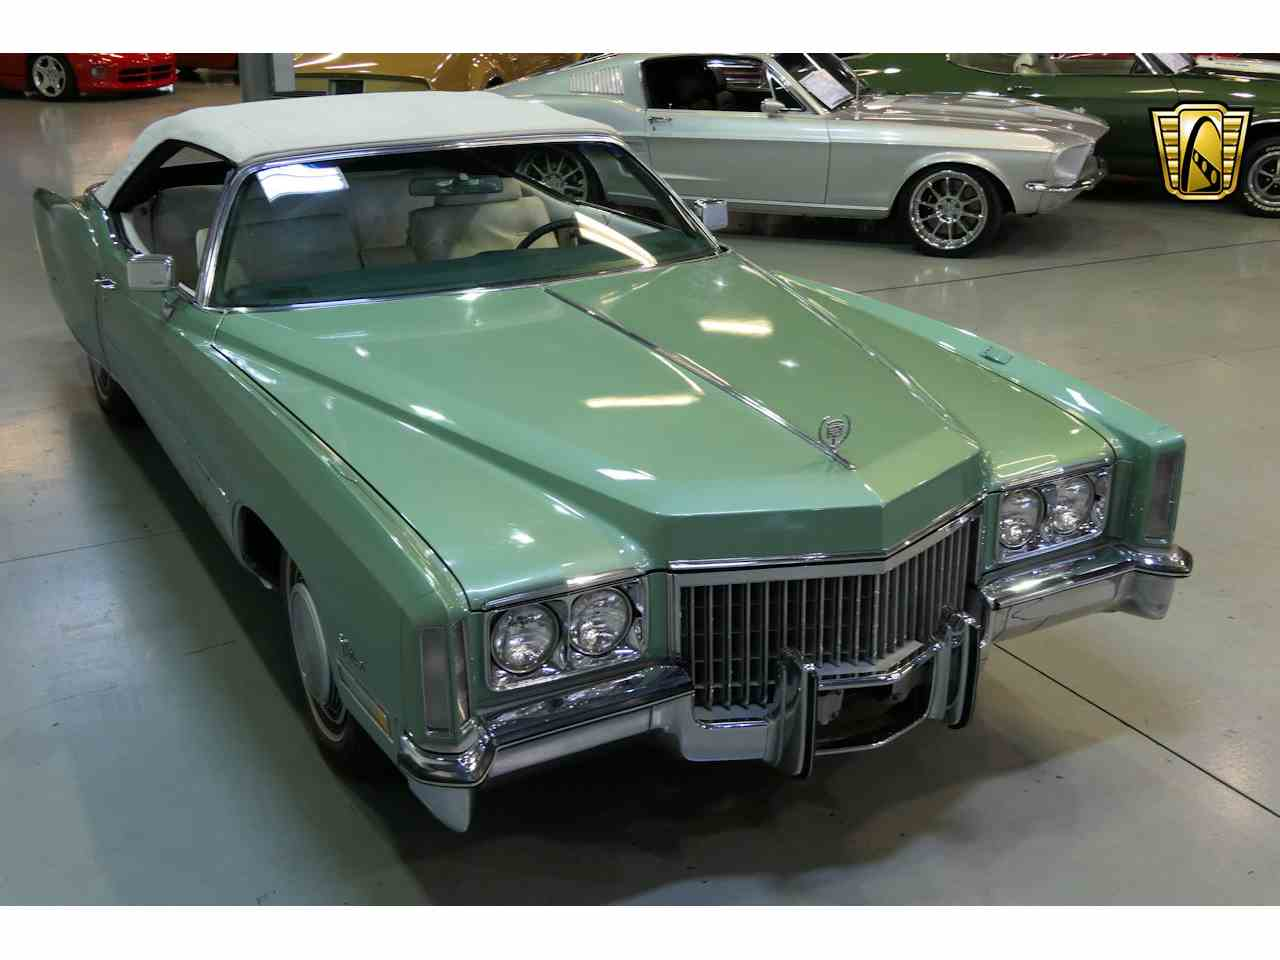 Large Picture of '72 Cadillac Eldorado located in Lake Mary Florida - $25,995.00 - NEP5